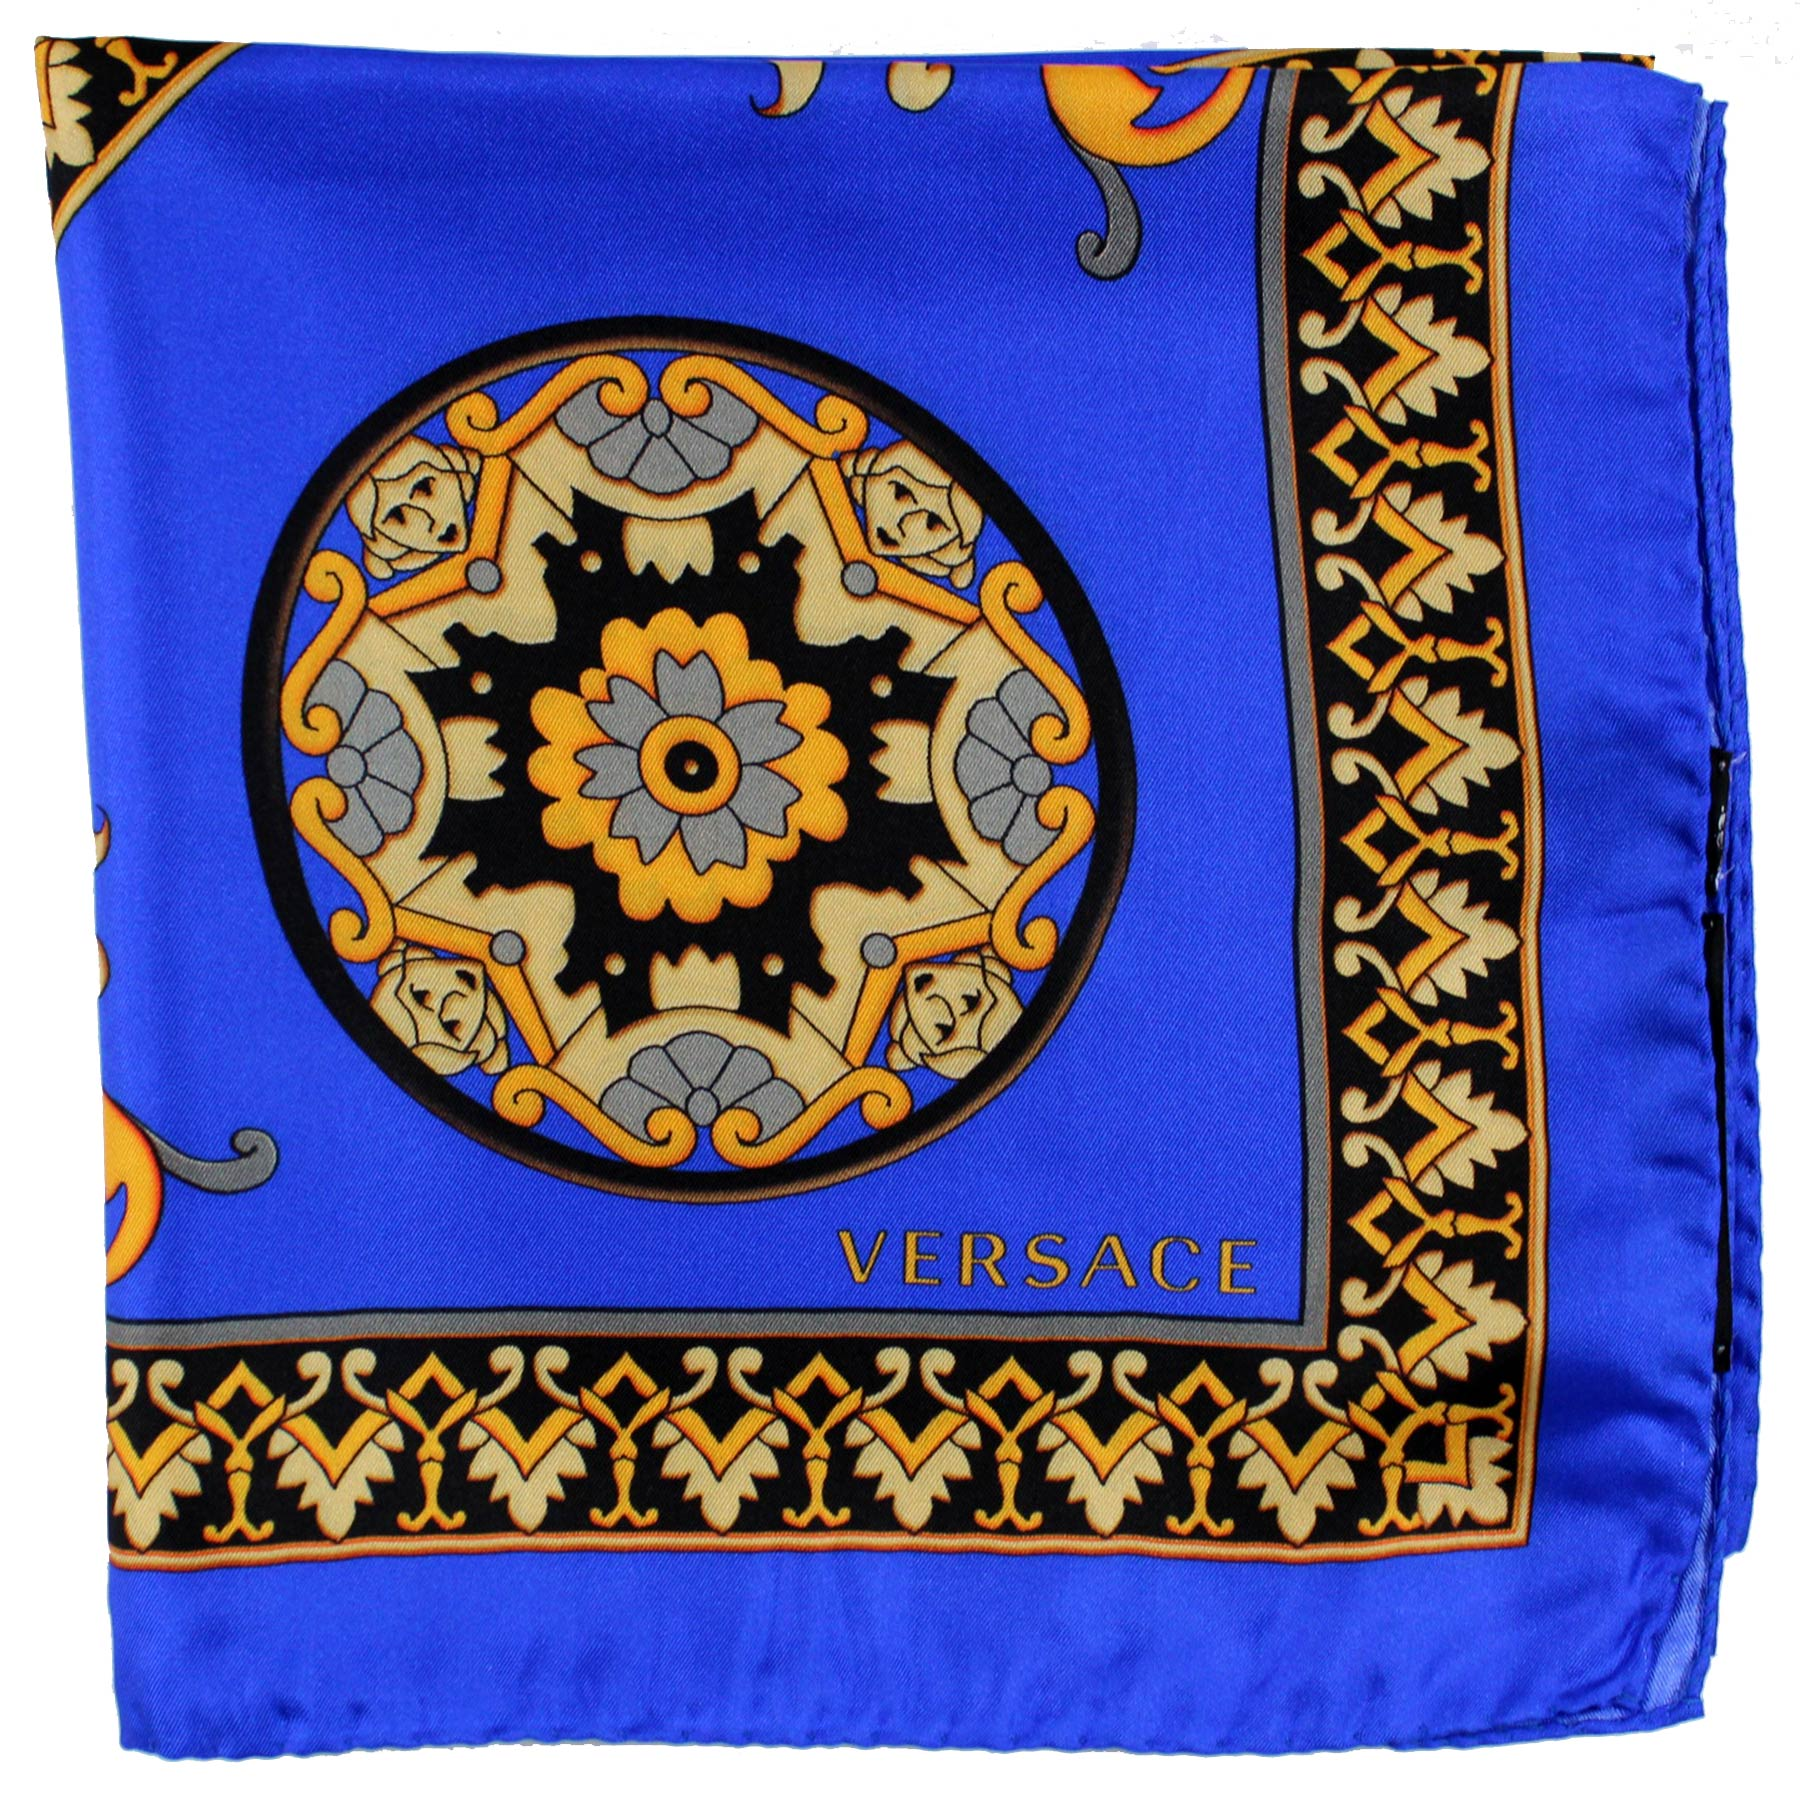 Versace Scarf Royal Blue Gold Medusa